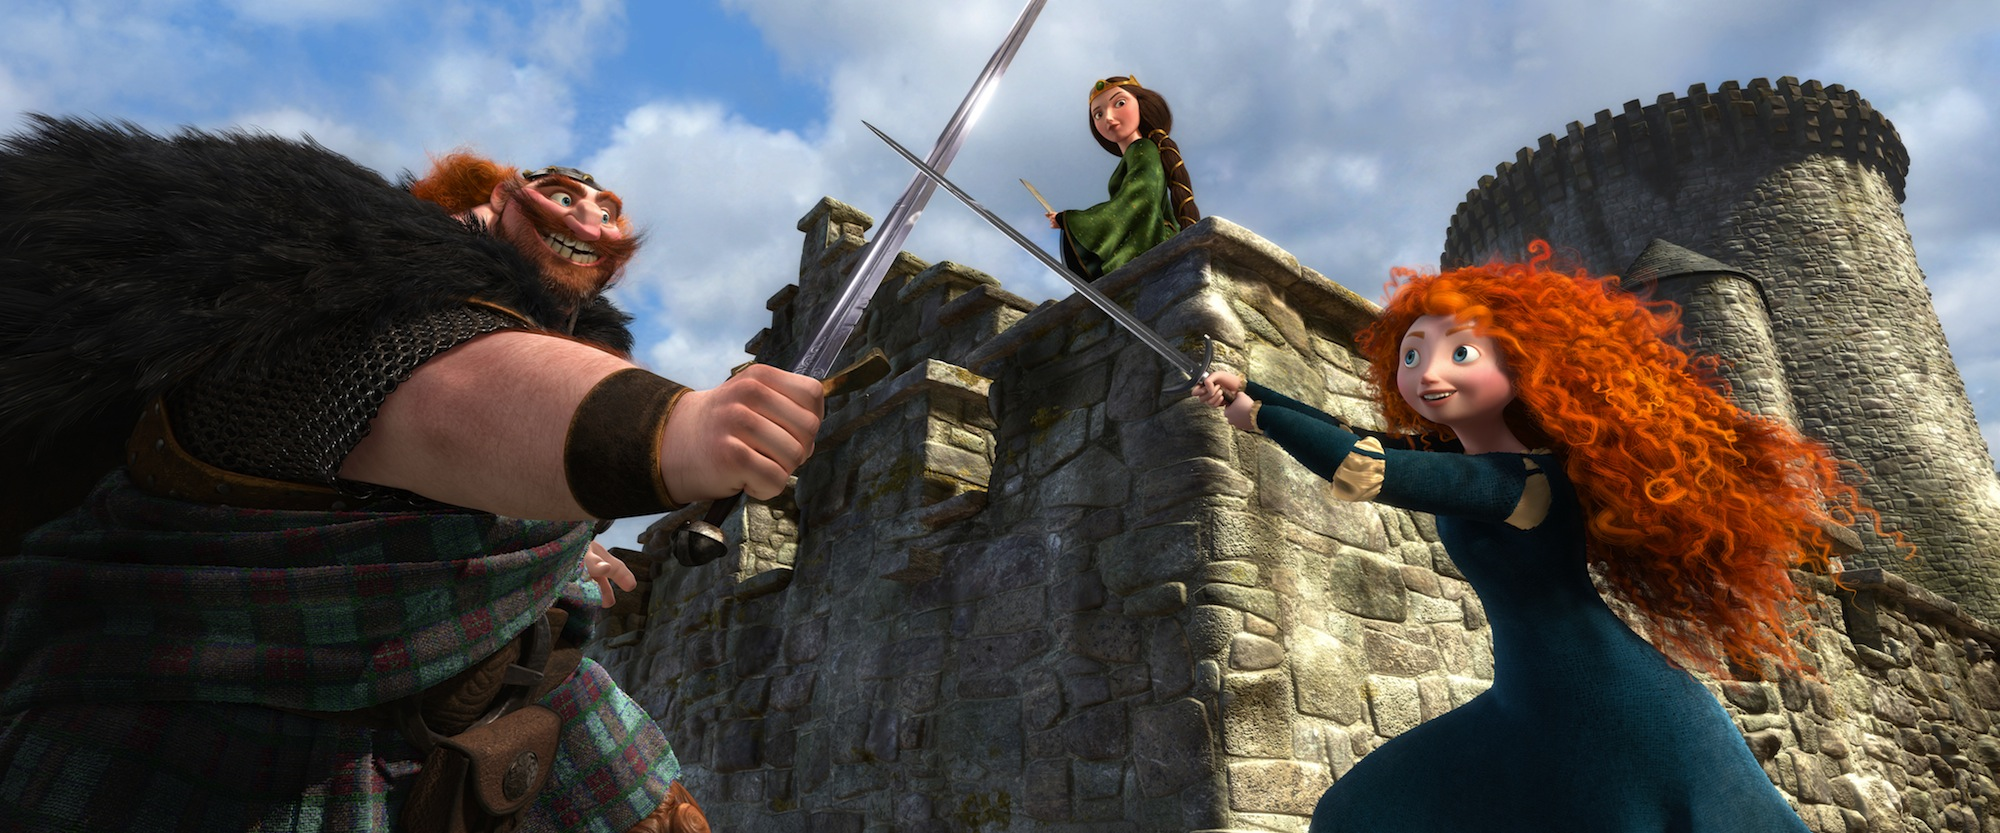 Brave - Merida, Sword, and Fergus